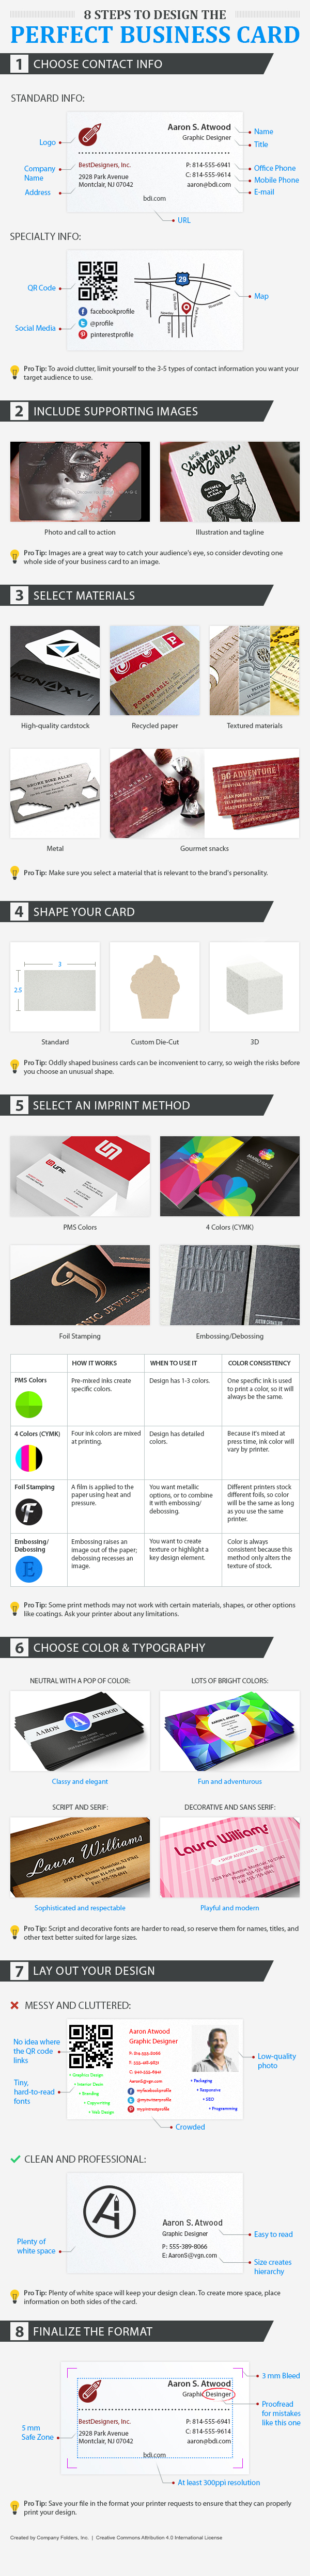 Business Card Design Infographic